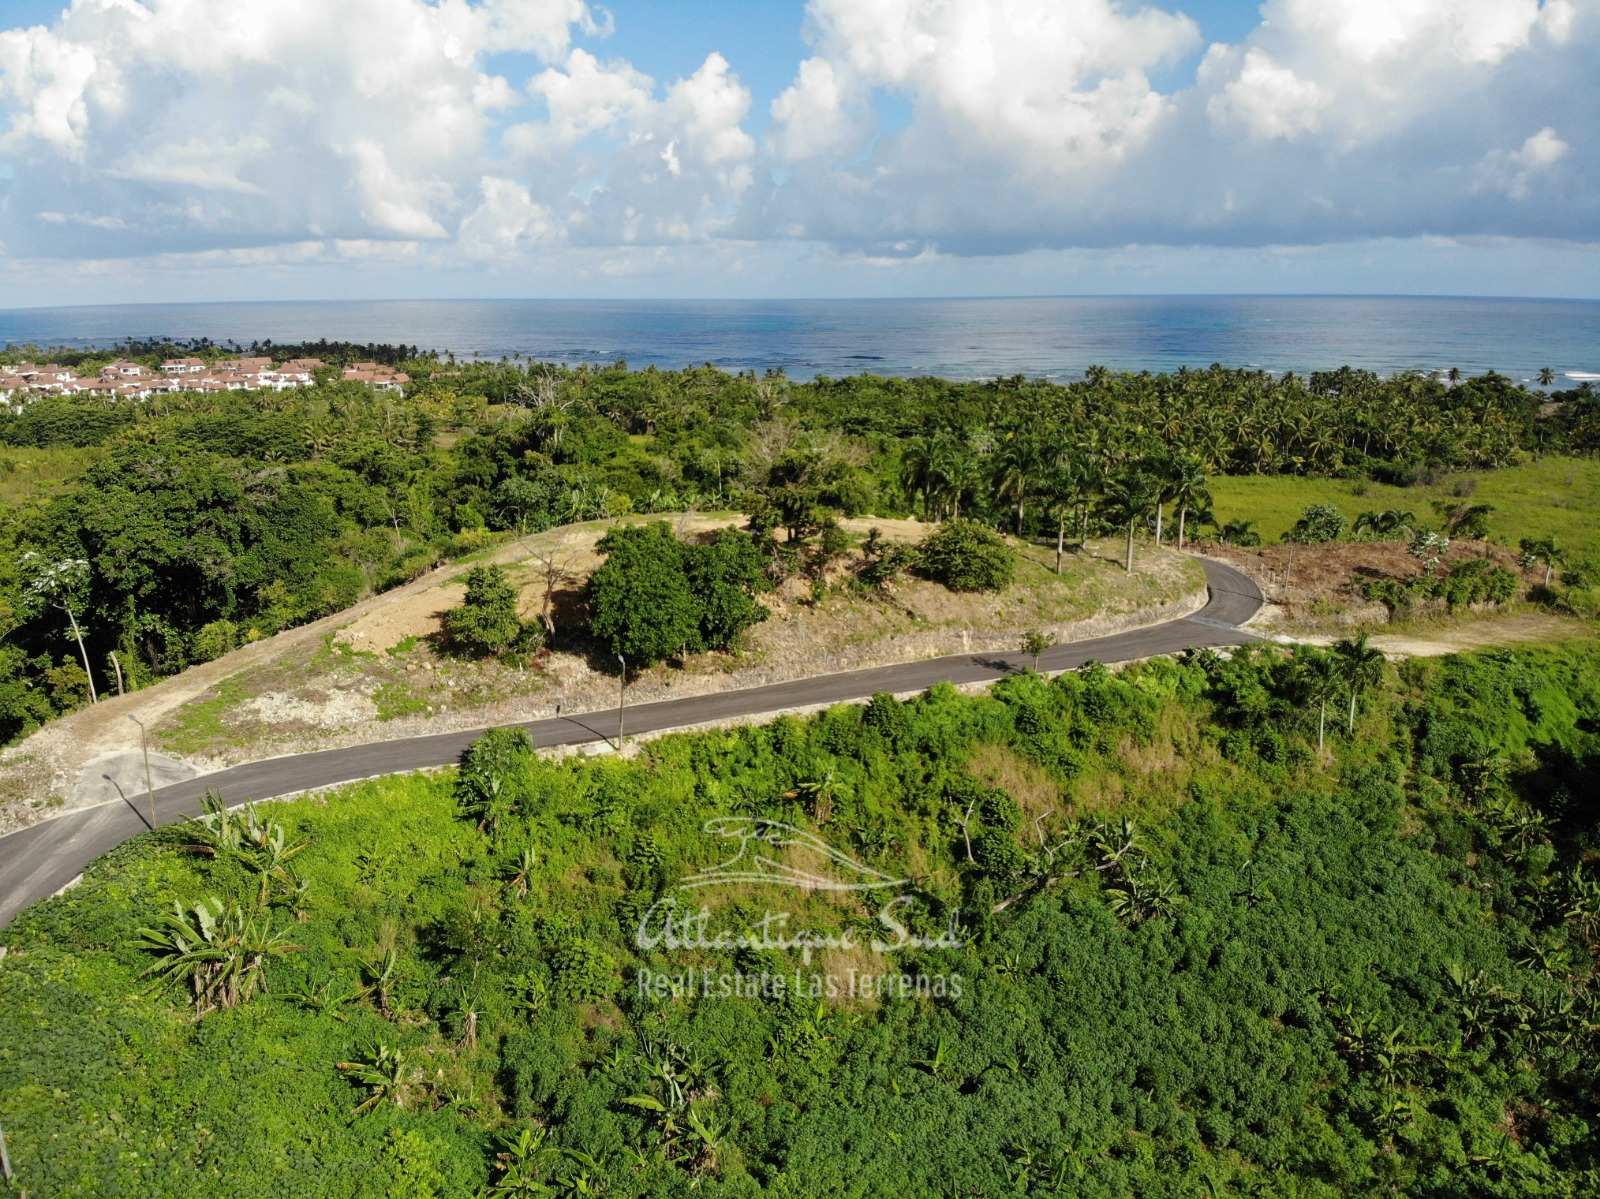 Land Lots for sale las terrenas samana3.jpeg